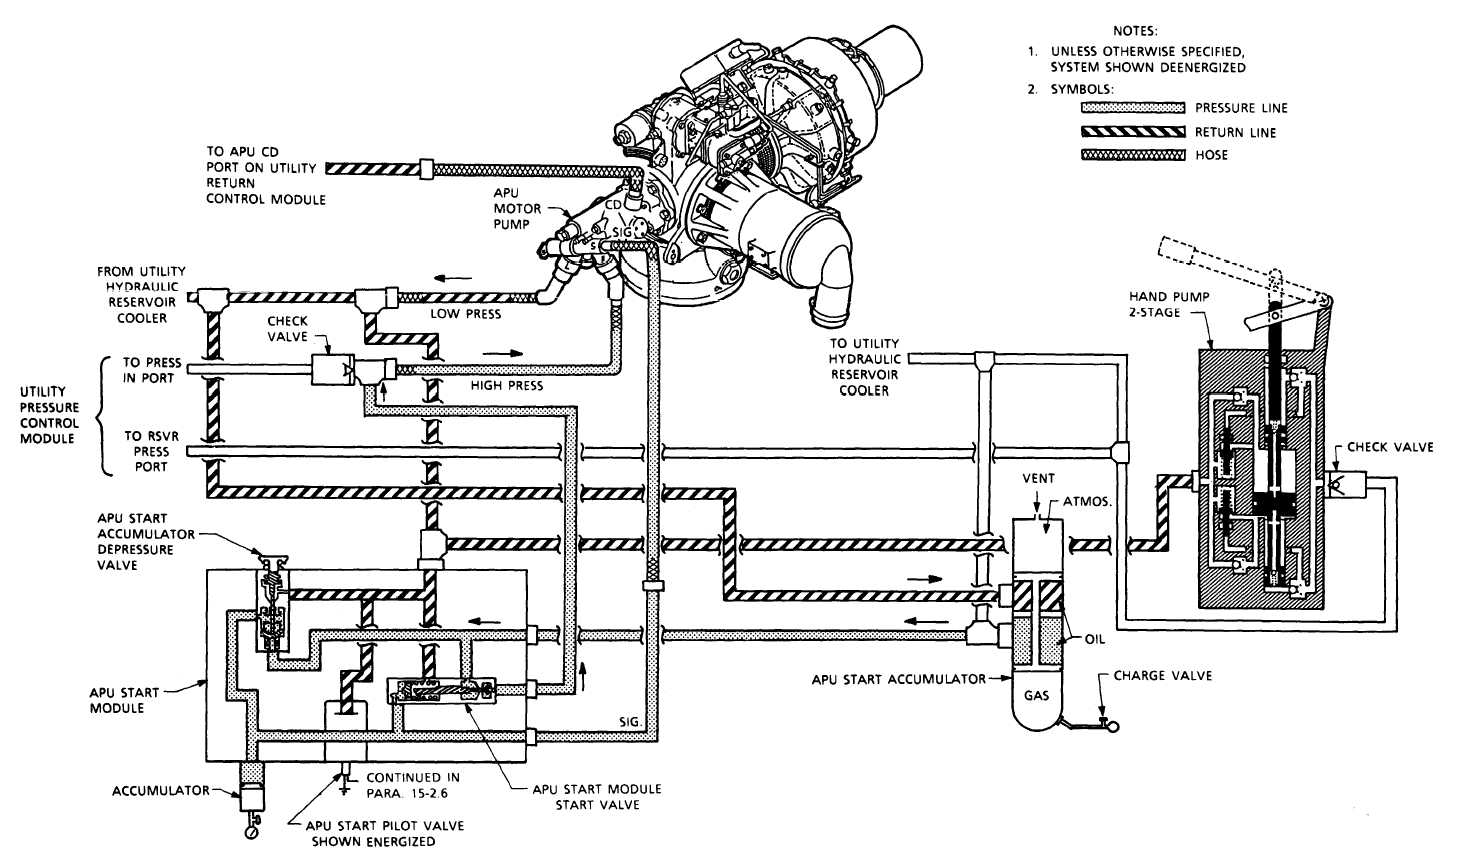 monarch pump wiring diagram 8eb05d6 m443 monarch pump wiring diagram wiring resources  pump wiring diagram wiring